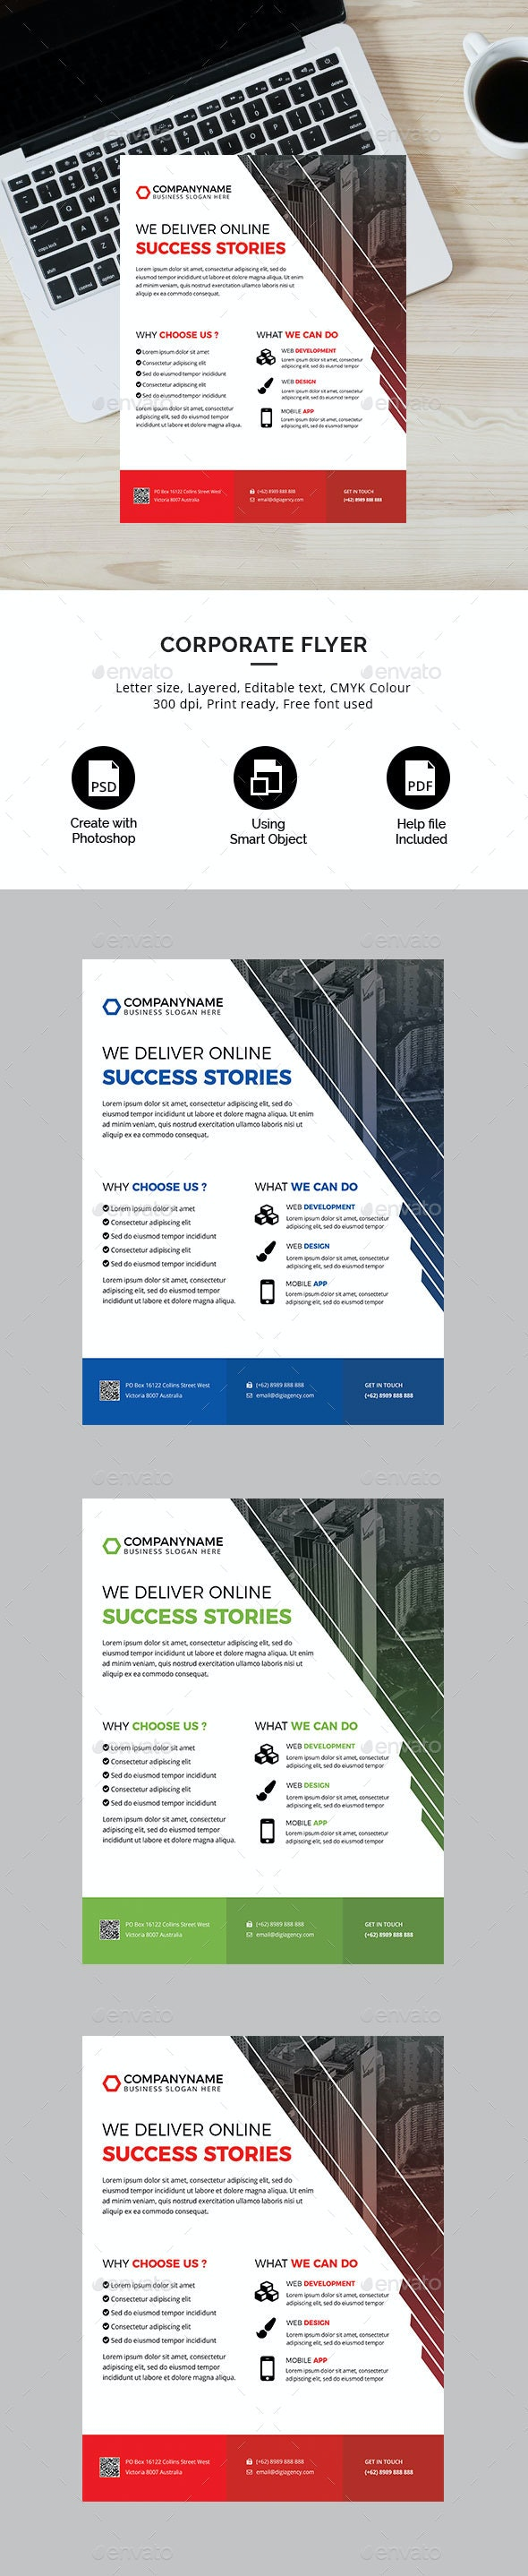 Digital Agency or Corporate Flyer - Corporate Flyers